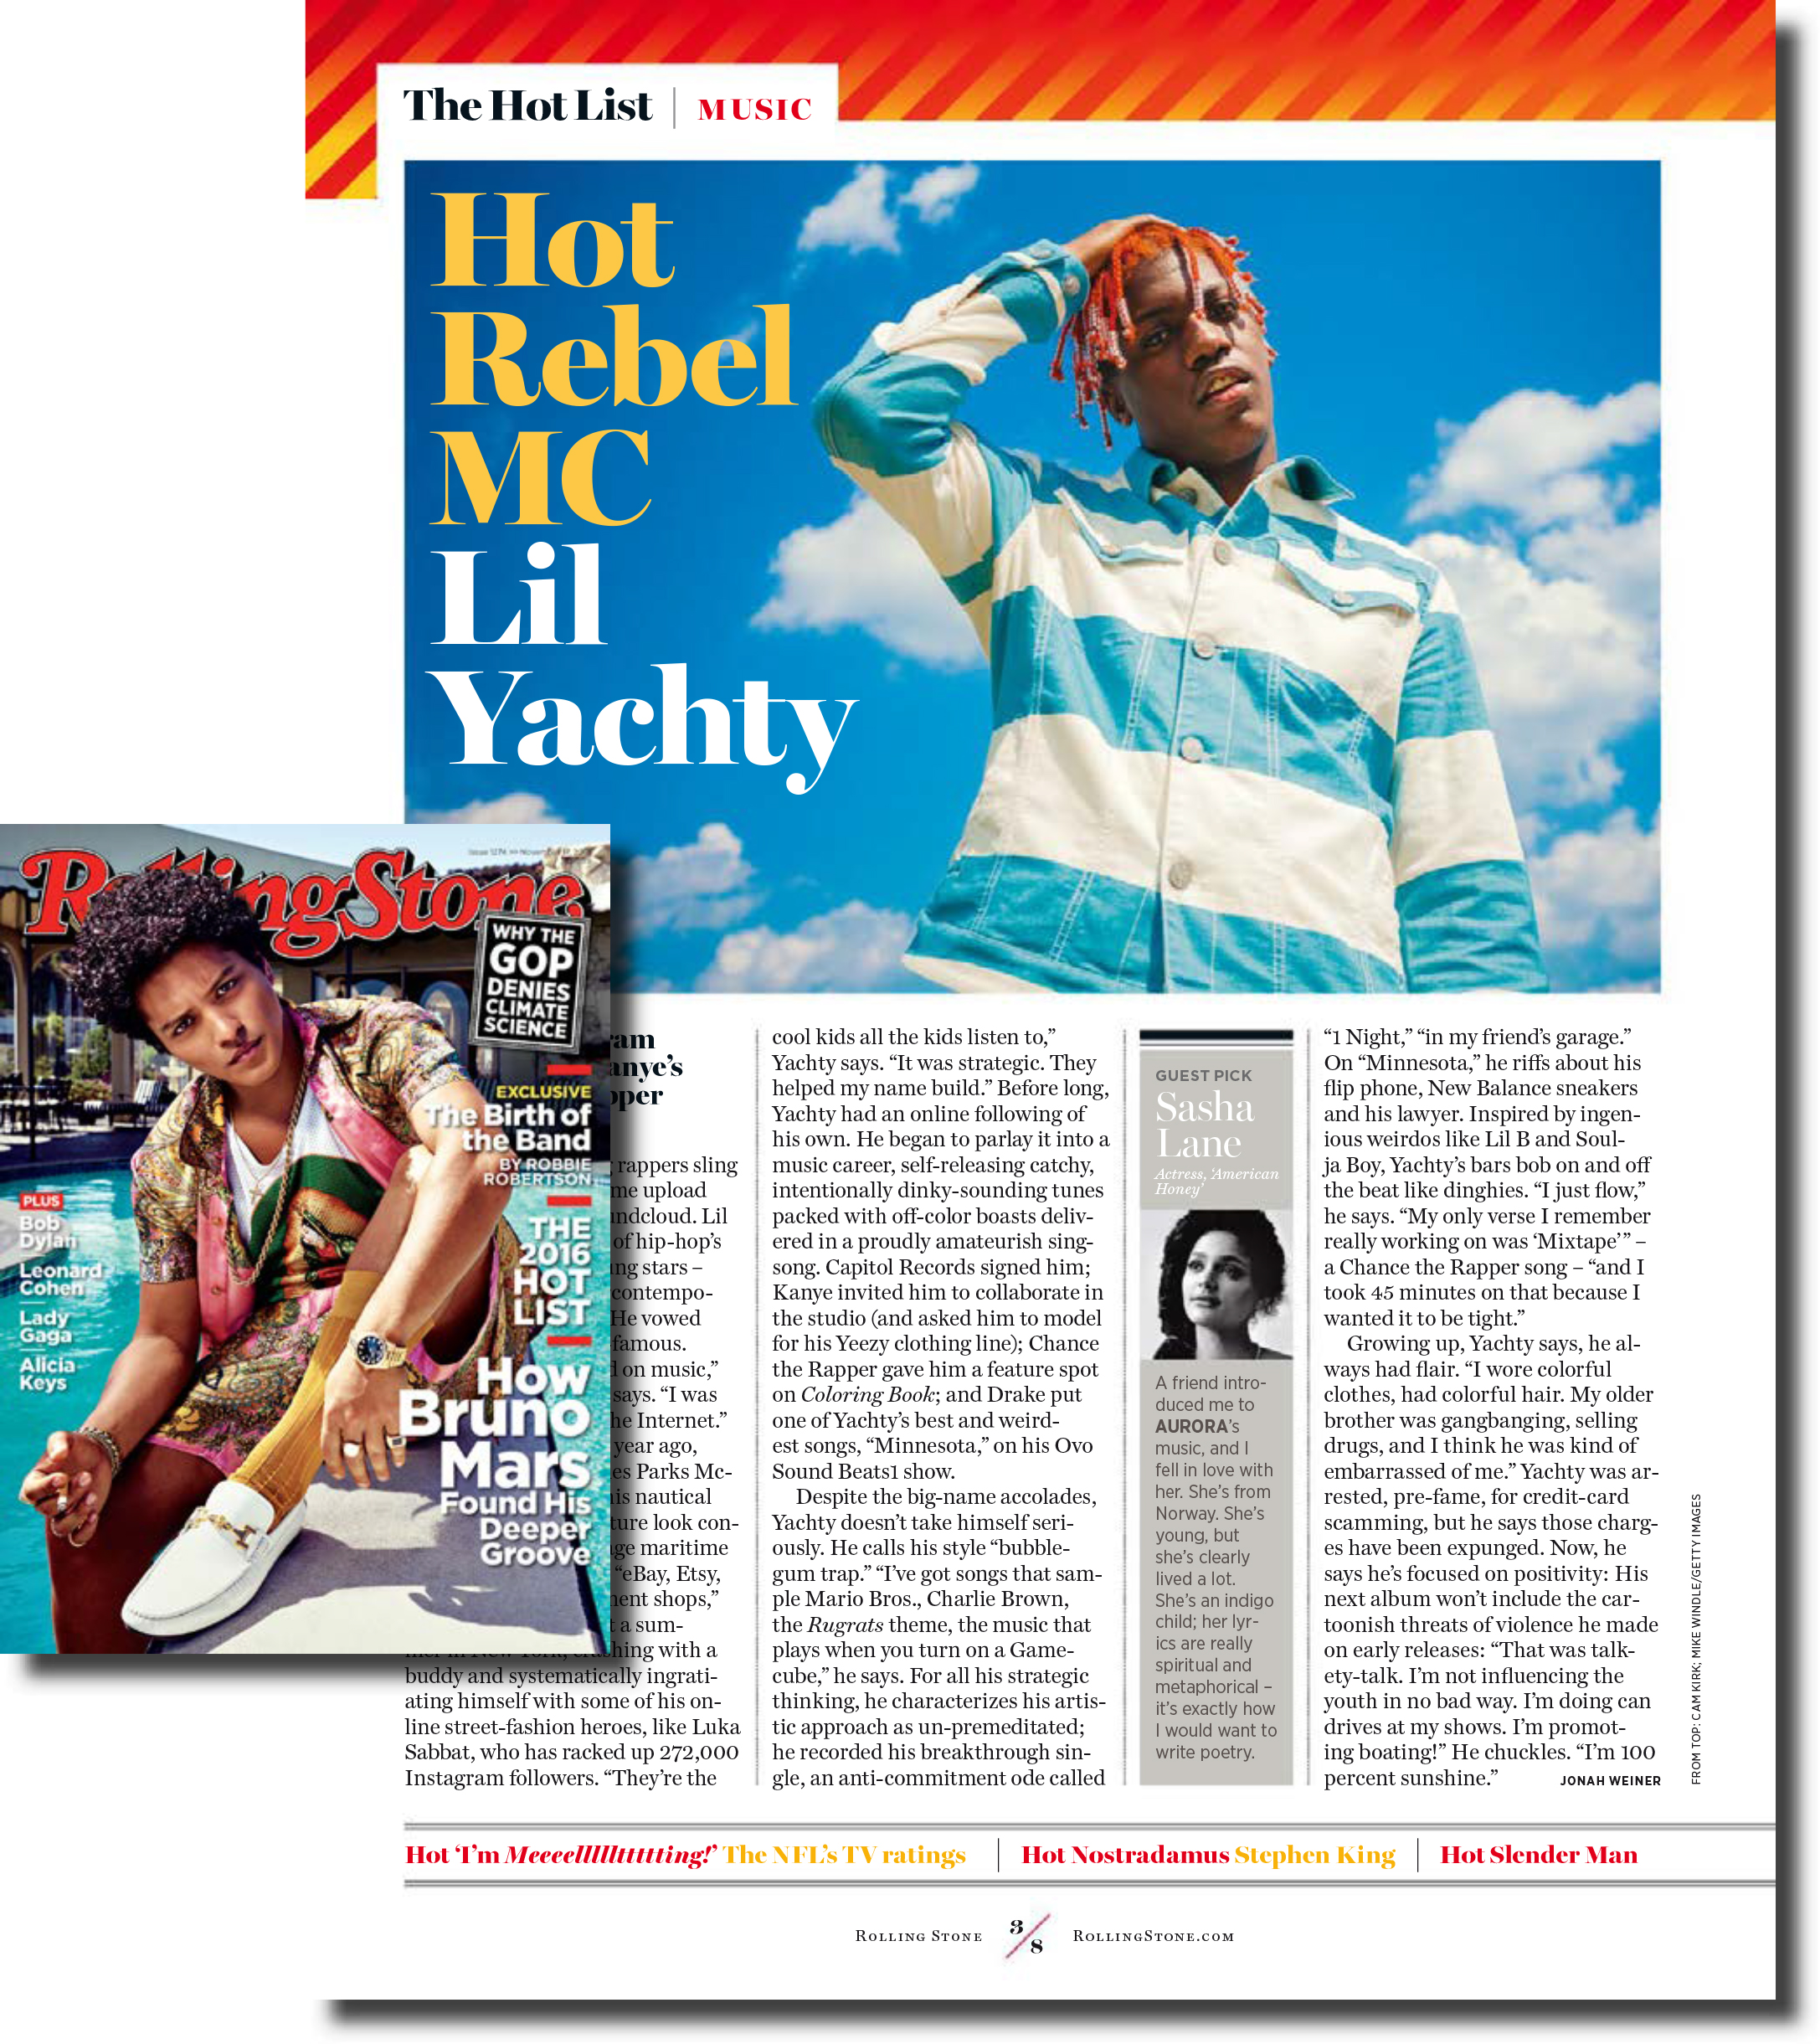 Lil Yachty for Rolling Stone Magazine Issue 1274 Nov. 2016